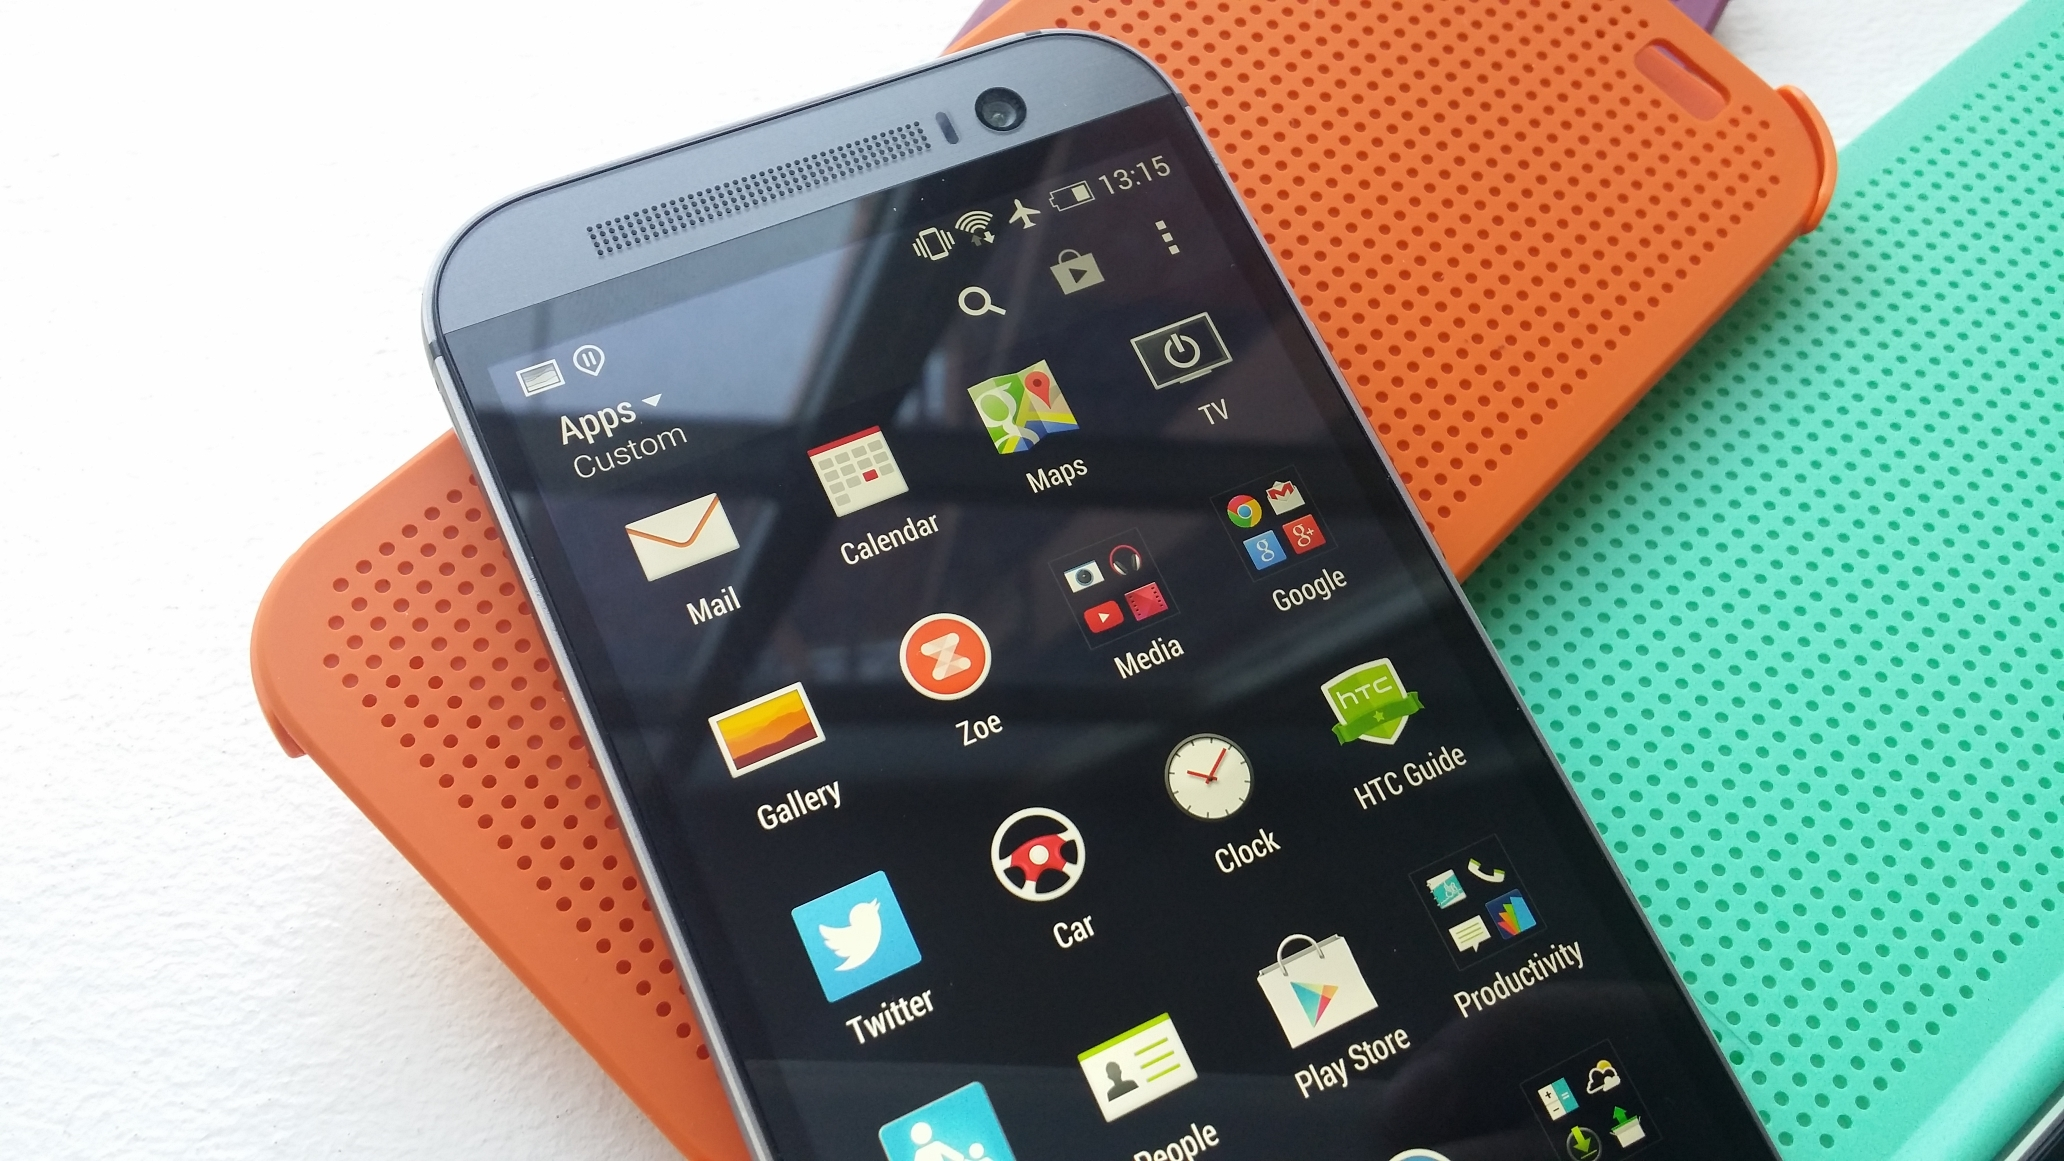 Nuove Tariffe Telefoniche Android 4 4 3 Kitkat Disponibile Per Htc One M8 In Europa